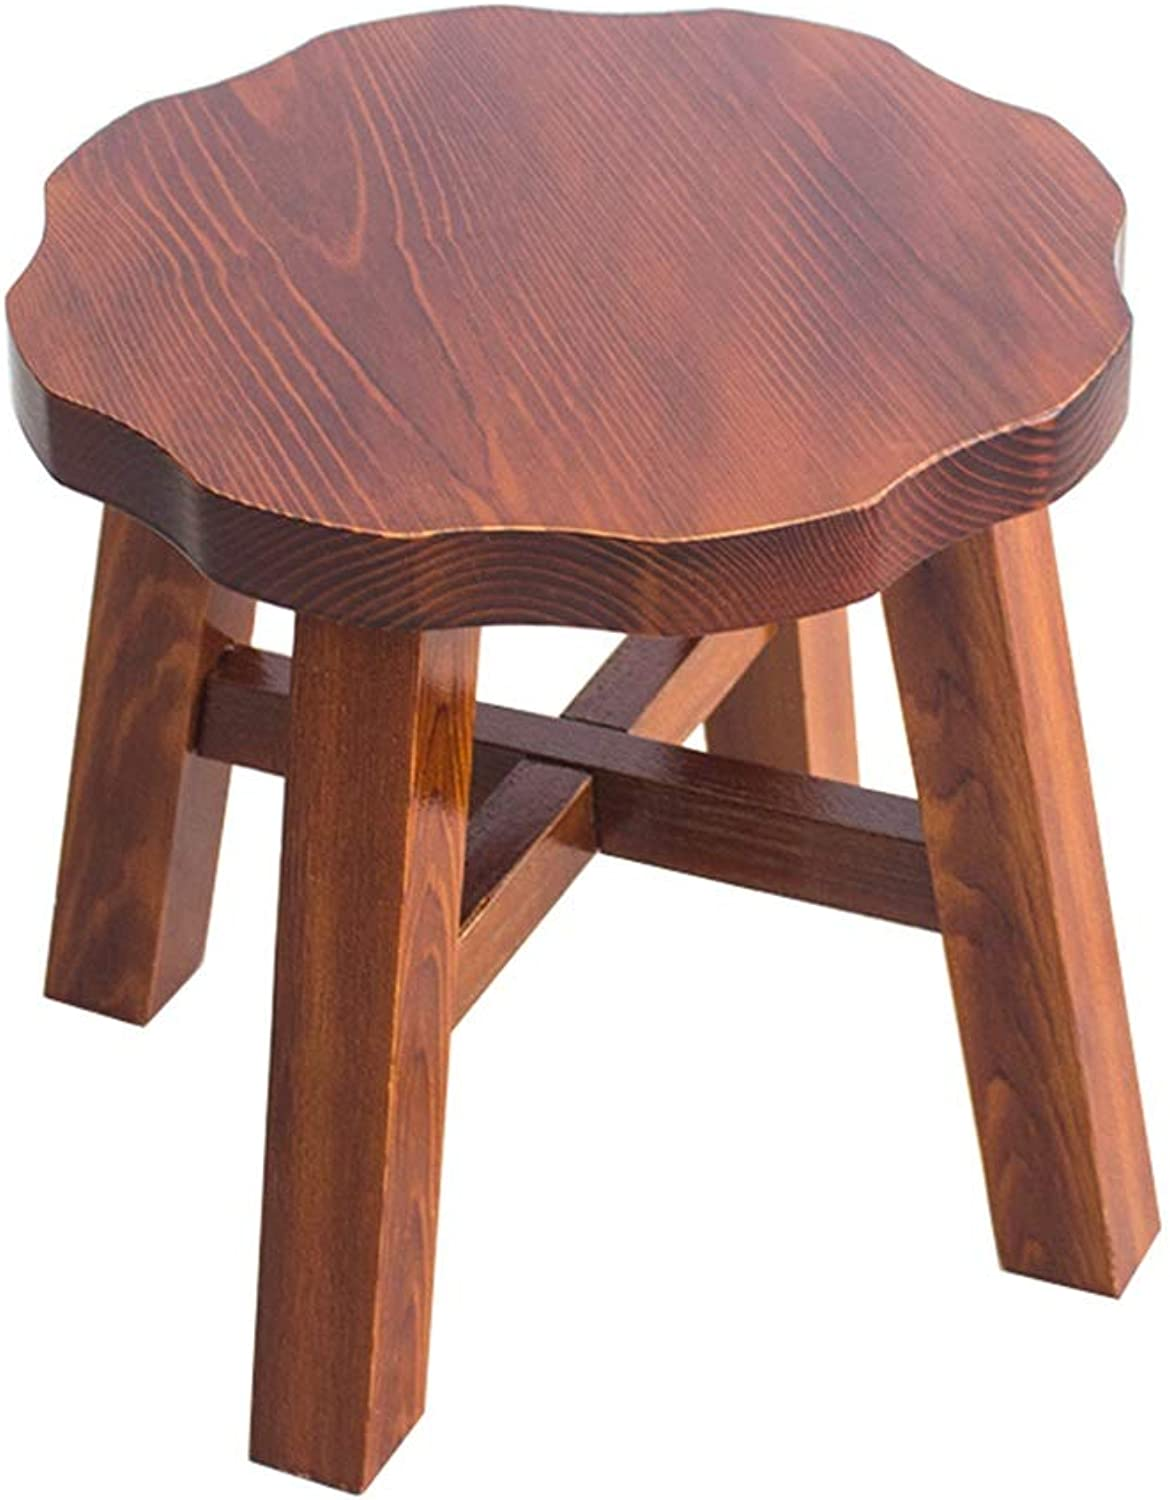 Stool - shoes Bench, Living Room Solid Wood Sofa Bench, Home Dressing Stool Small Stool